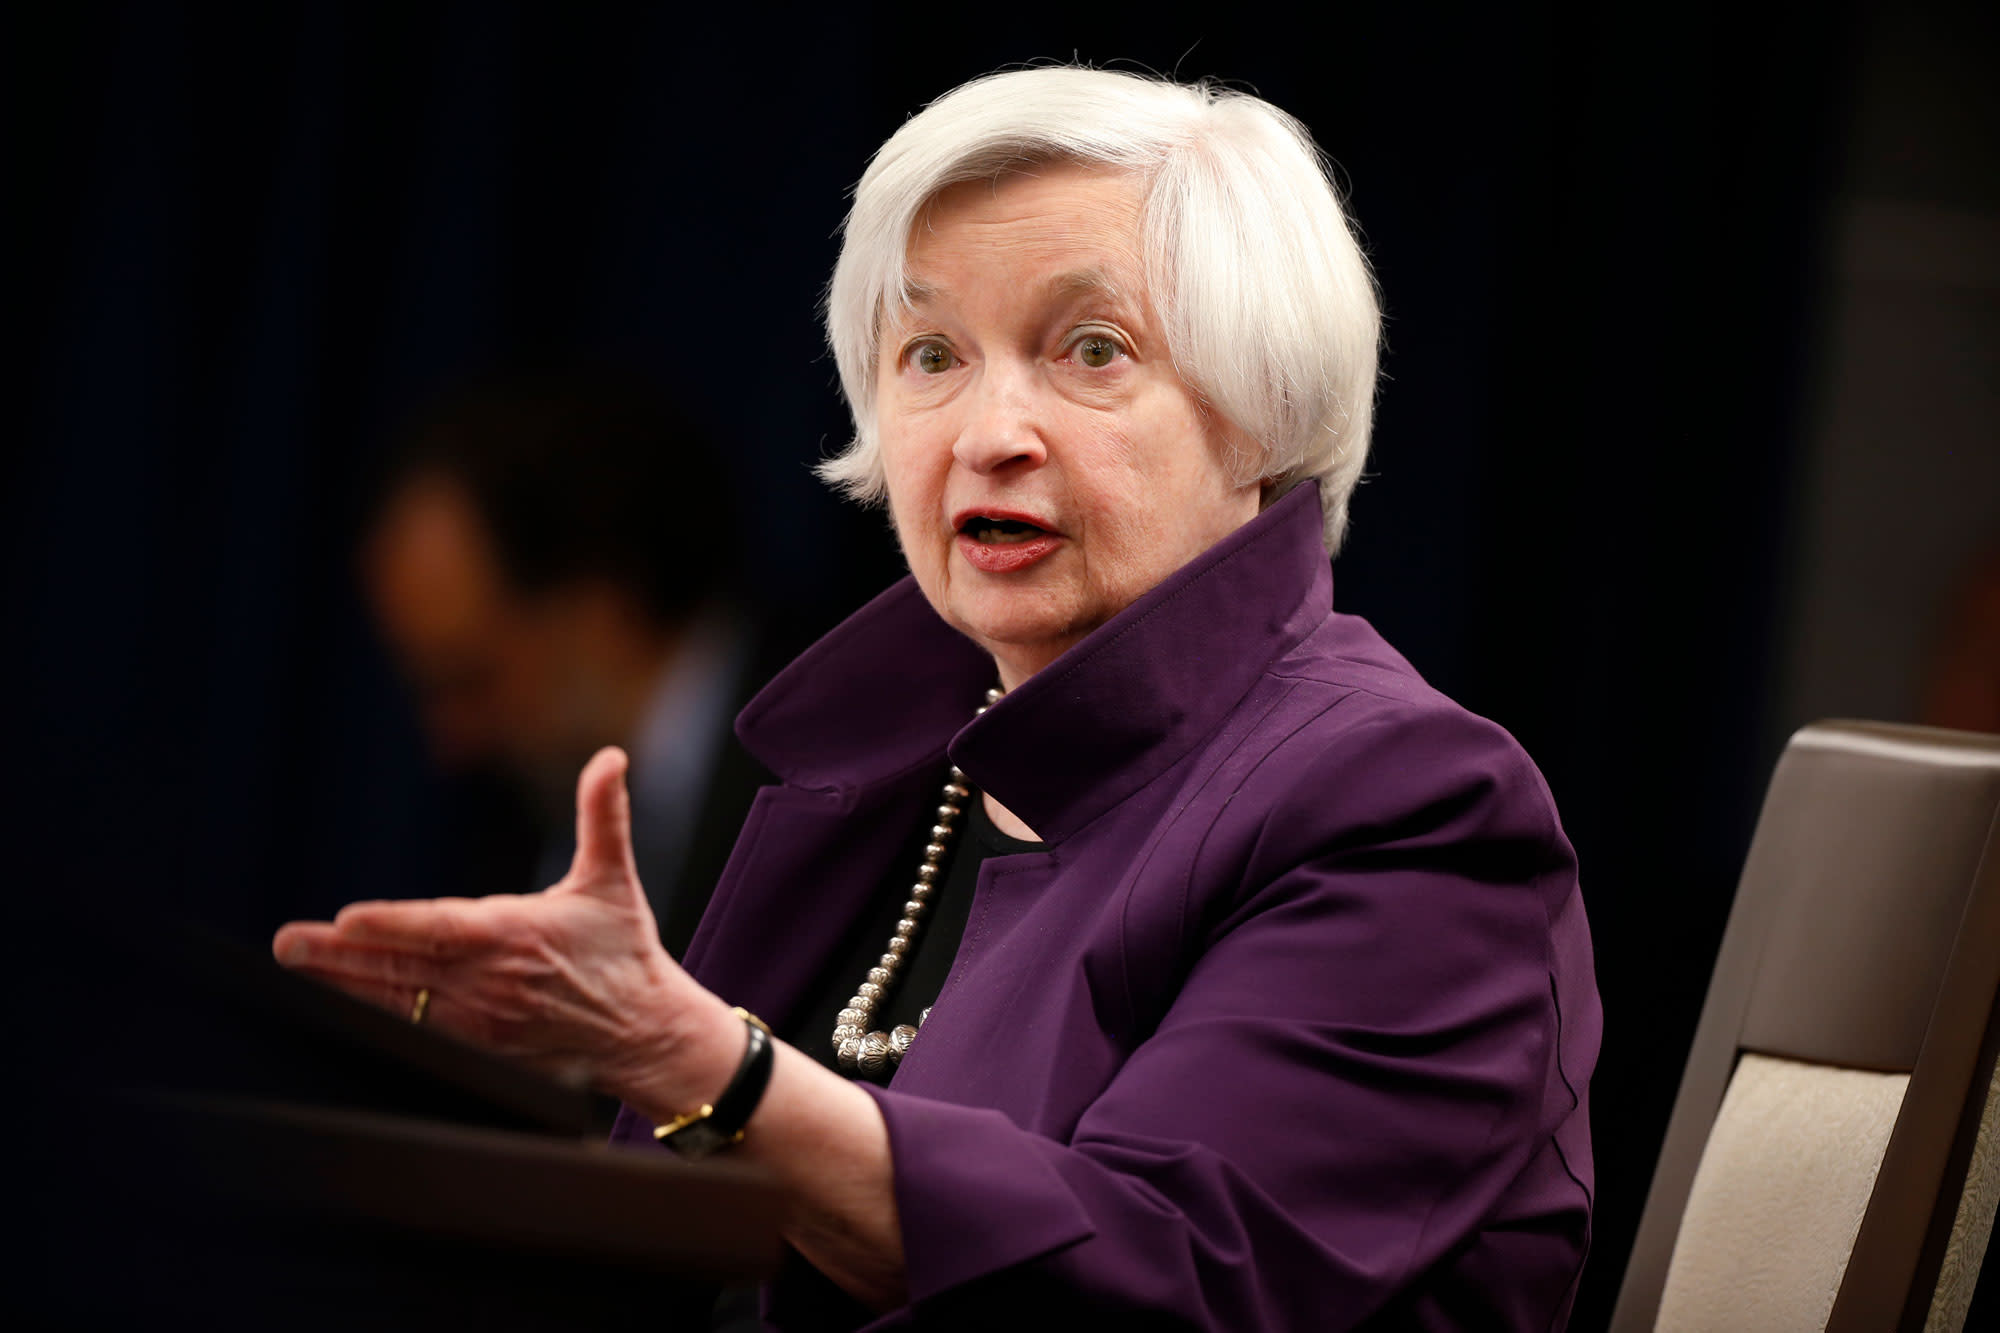 Markets cheer Yellen pick for Treasury, seeing her focus on fixing the economy and not politics thumbnail